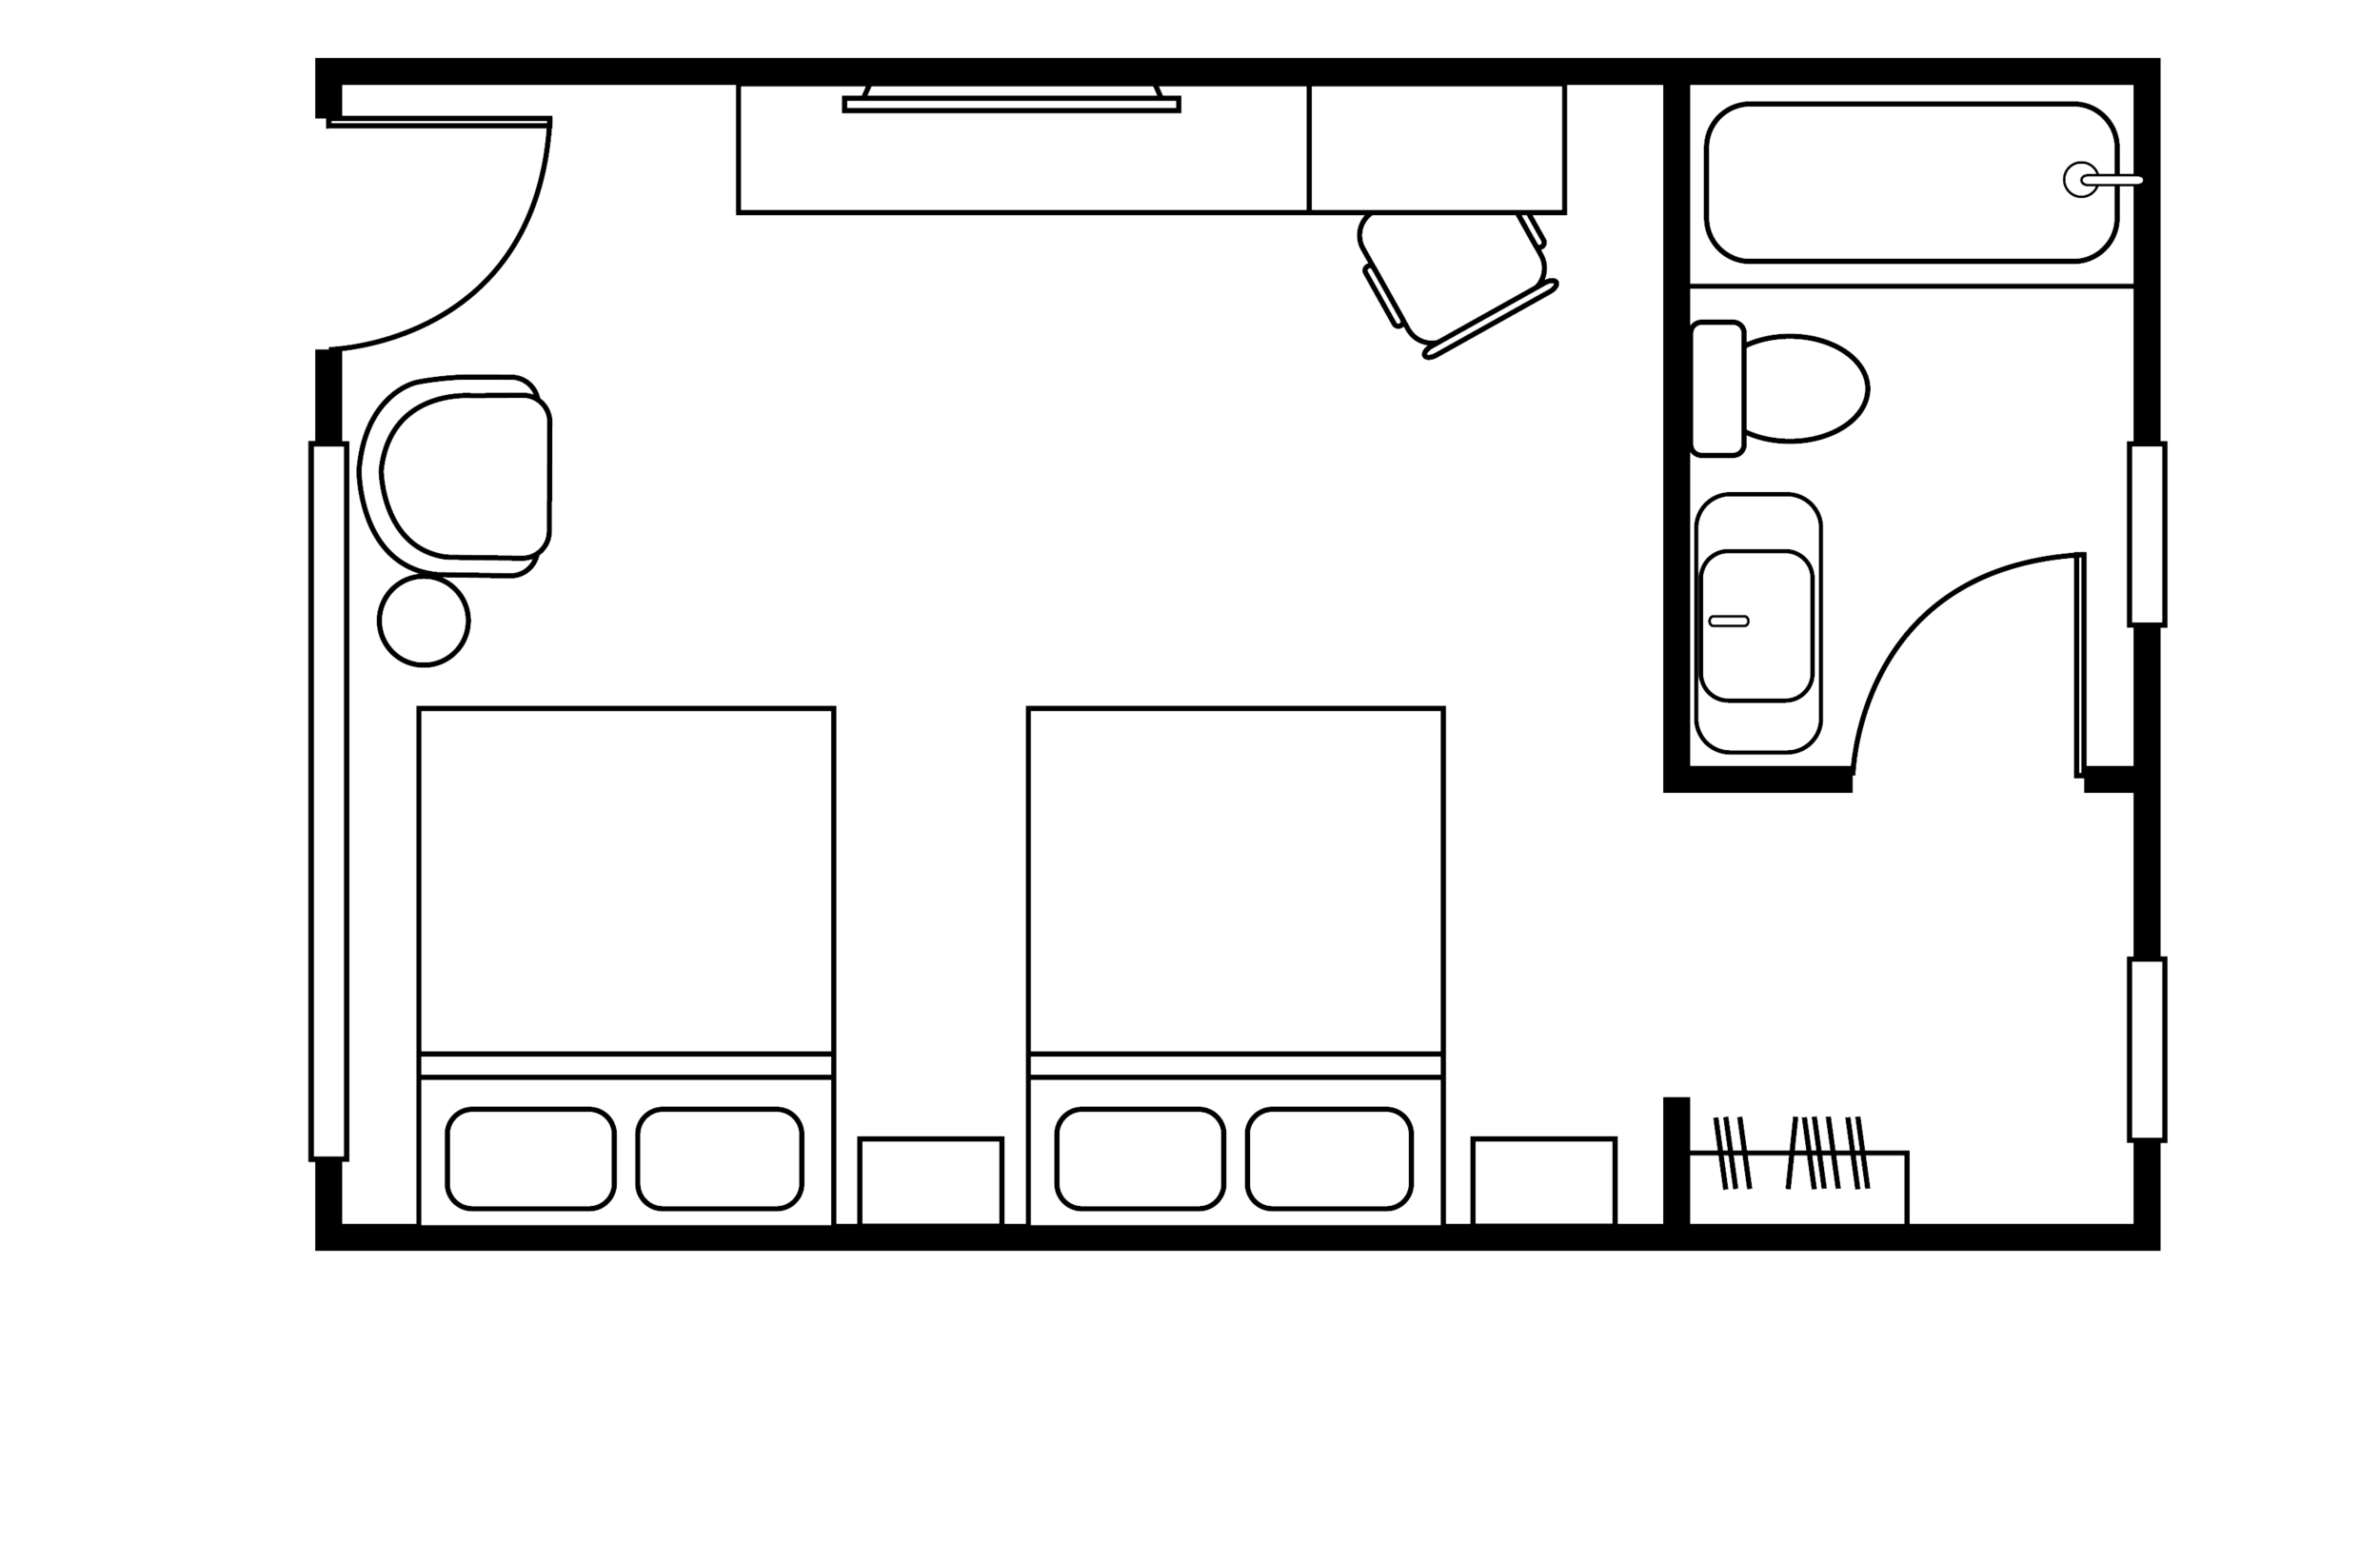 Room layouts-05.png